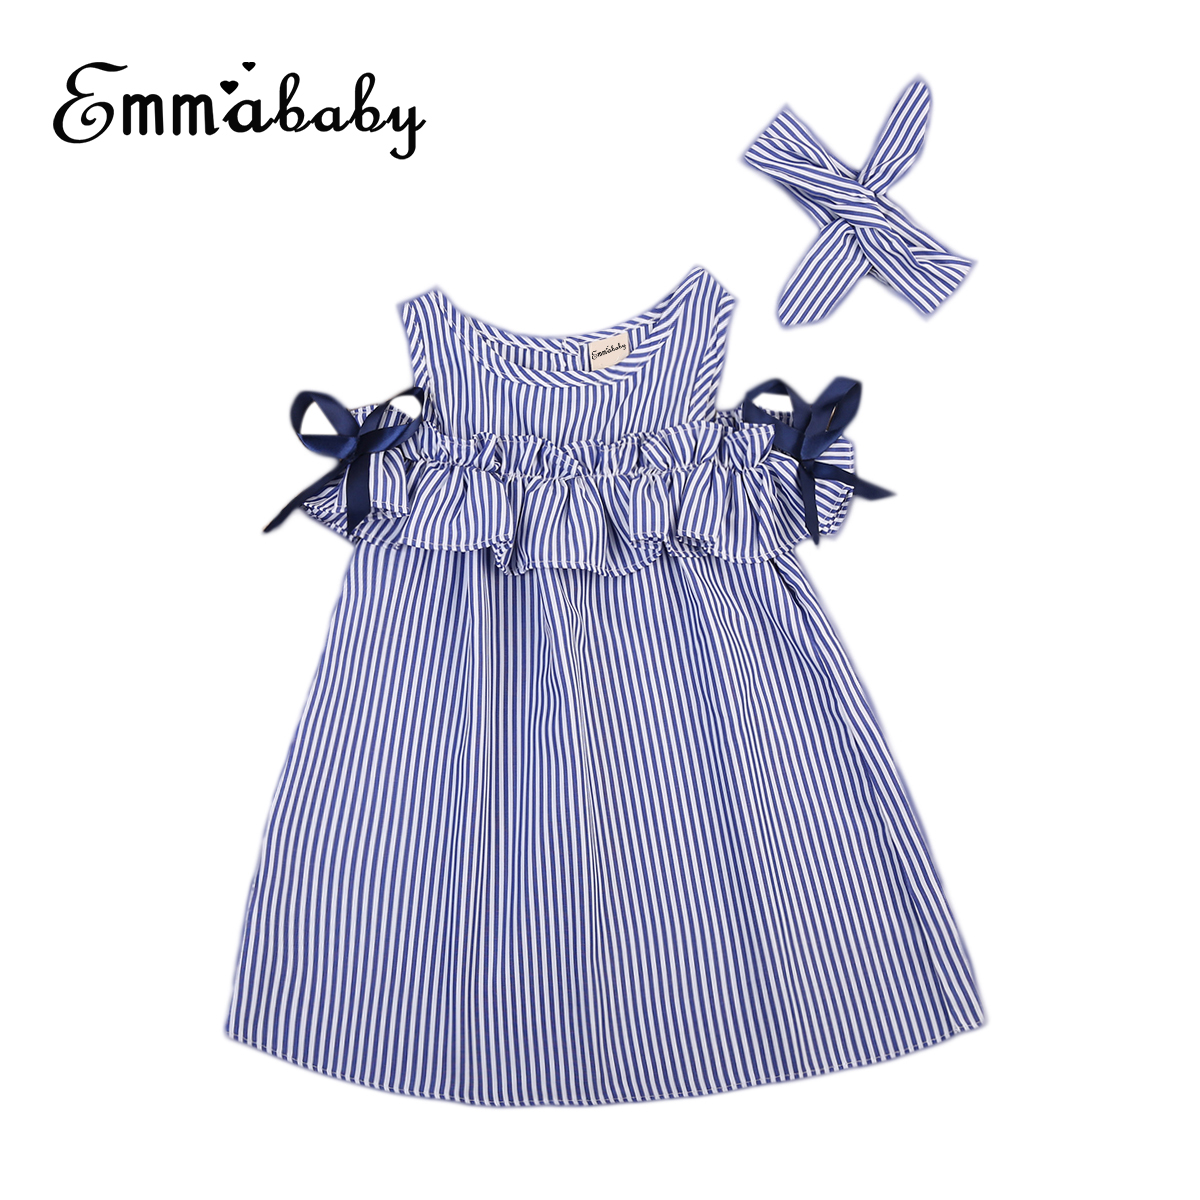 Toddler Kids Baby Girls Dresses Clothes Striped Off-shoulder Ruffles Dress Blue Party Ball Gown Dress Girls Clothing